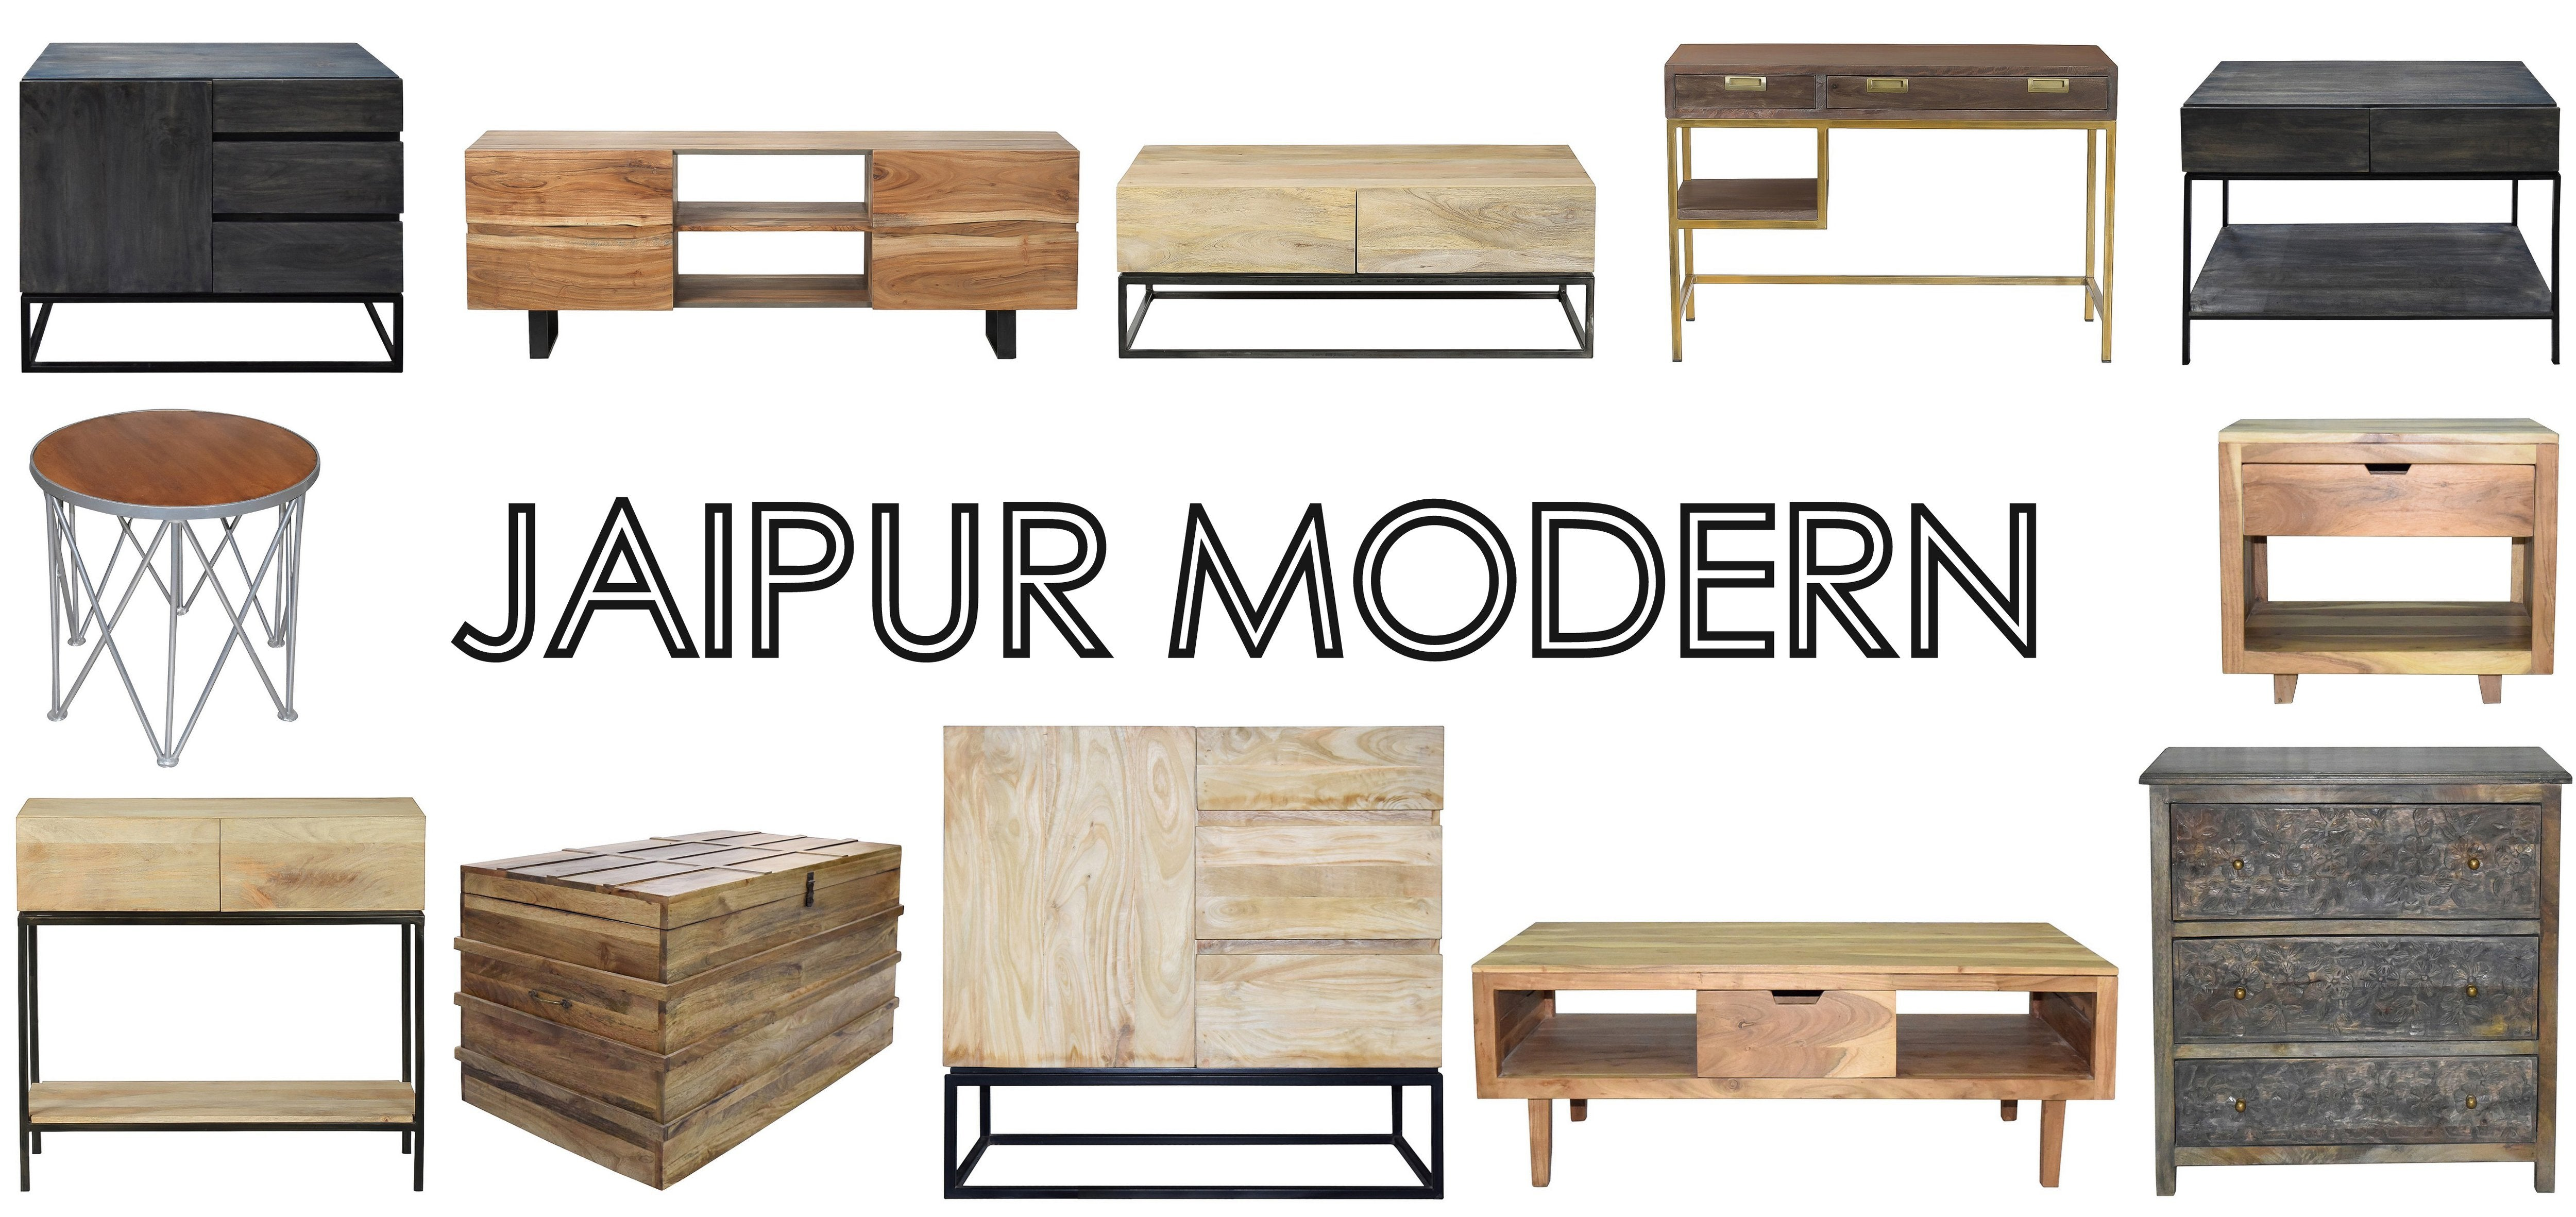 Chicago Furniture Store Wrightwood Furniture. Furniture Store Chicago  Modern   Rustic   Wrightwood Furniture